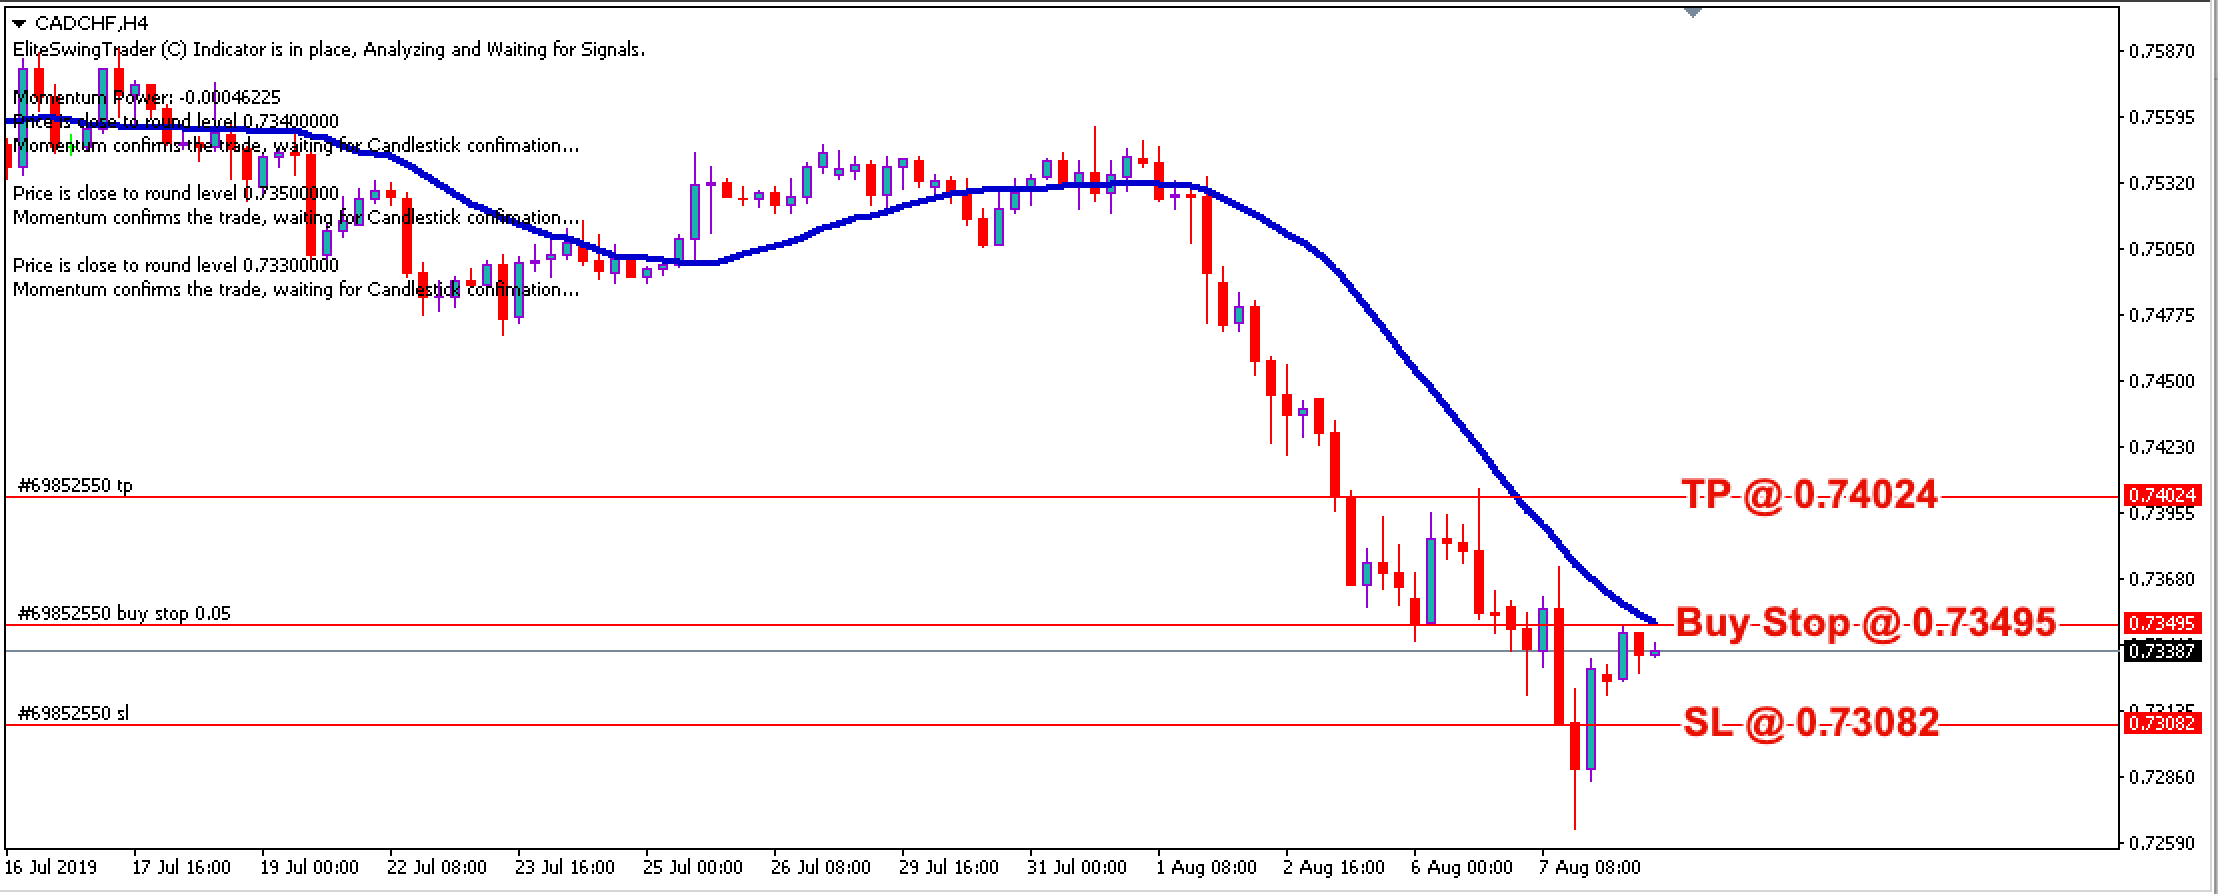 Elite Swing Trader Trade Signals CADCHF – 8th August 2019